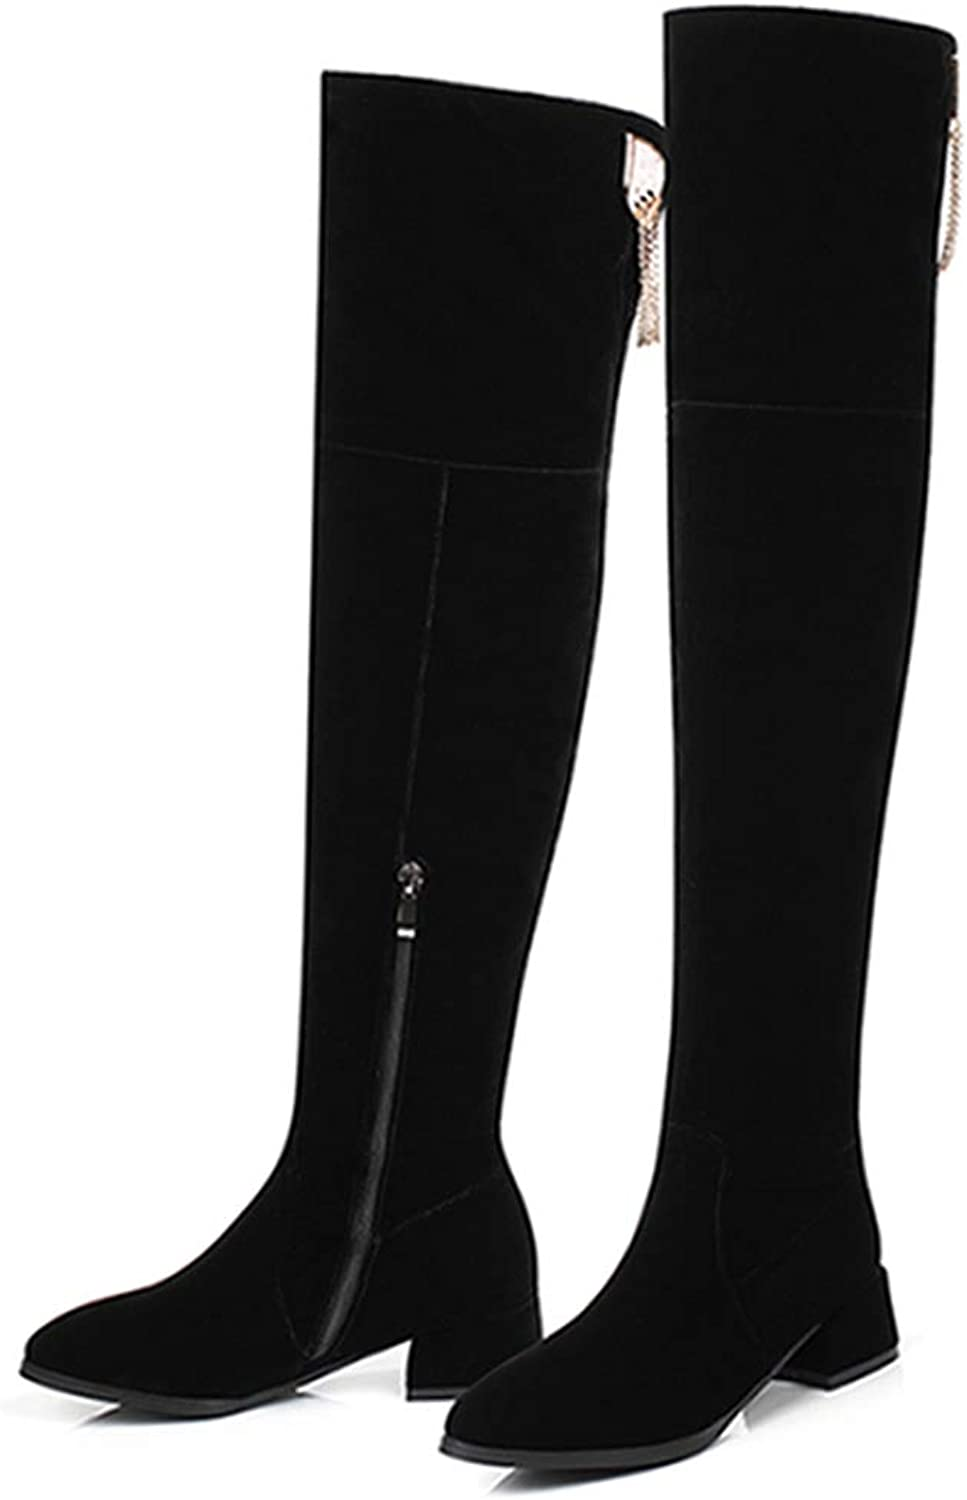 DOSOMI Women's Short Plush Flock Pointed Toe Zipper Square High Heels Over The Knee Thigh High Winter Boots